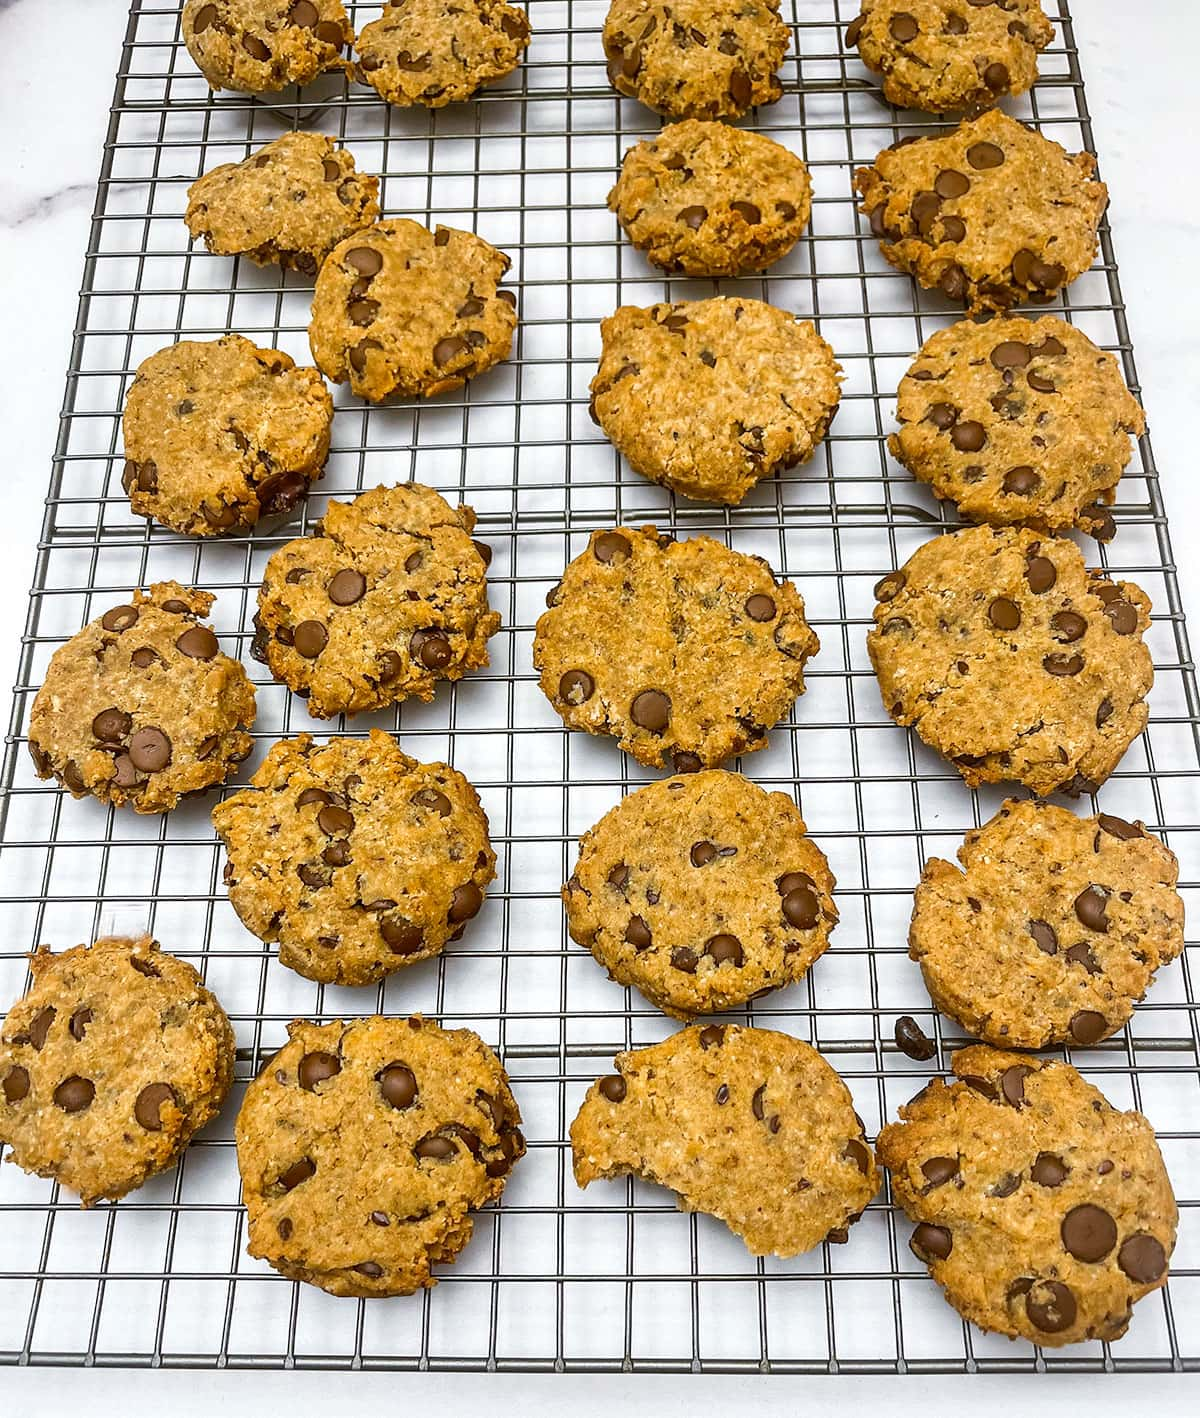 chocolate chips cooks on cooling rack